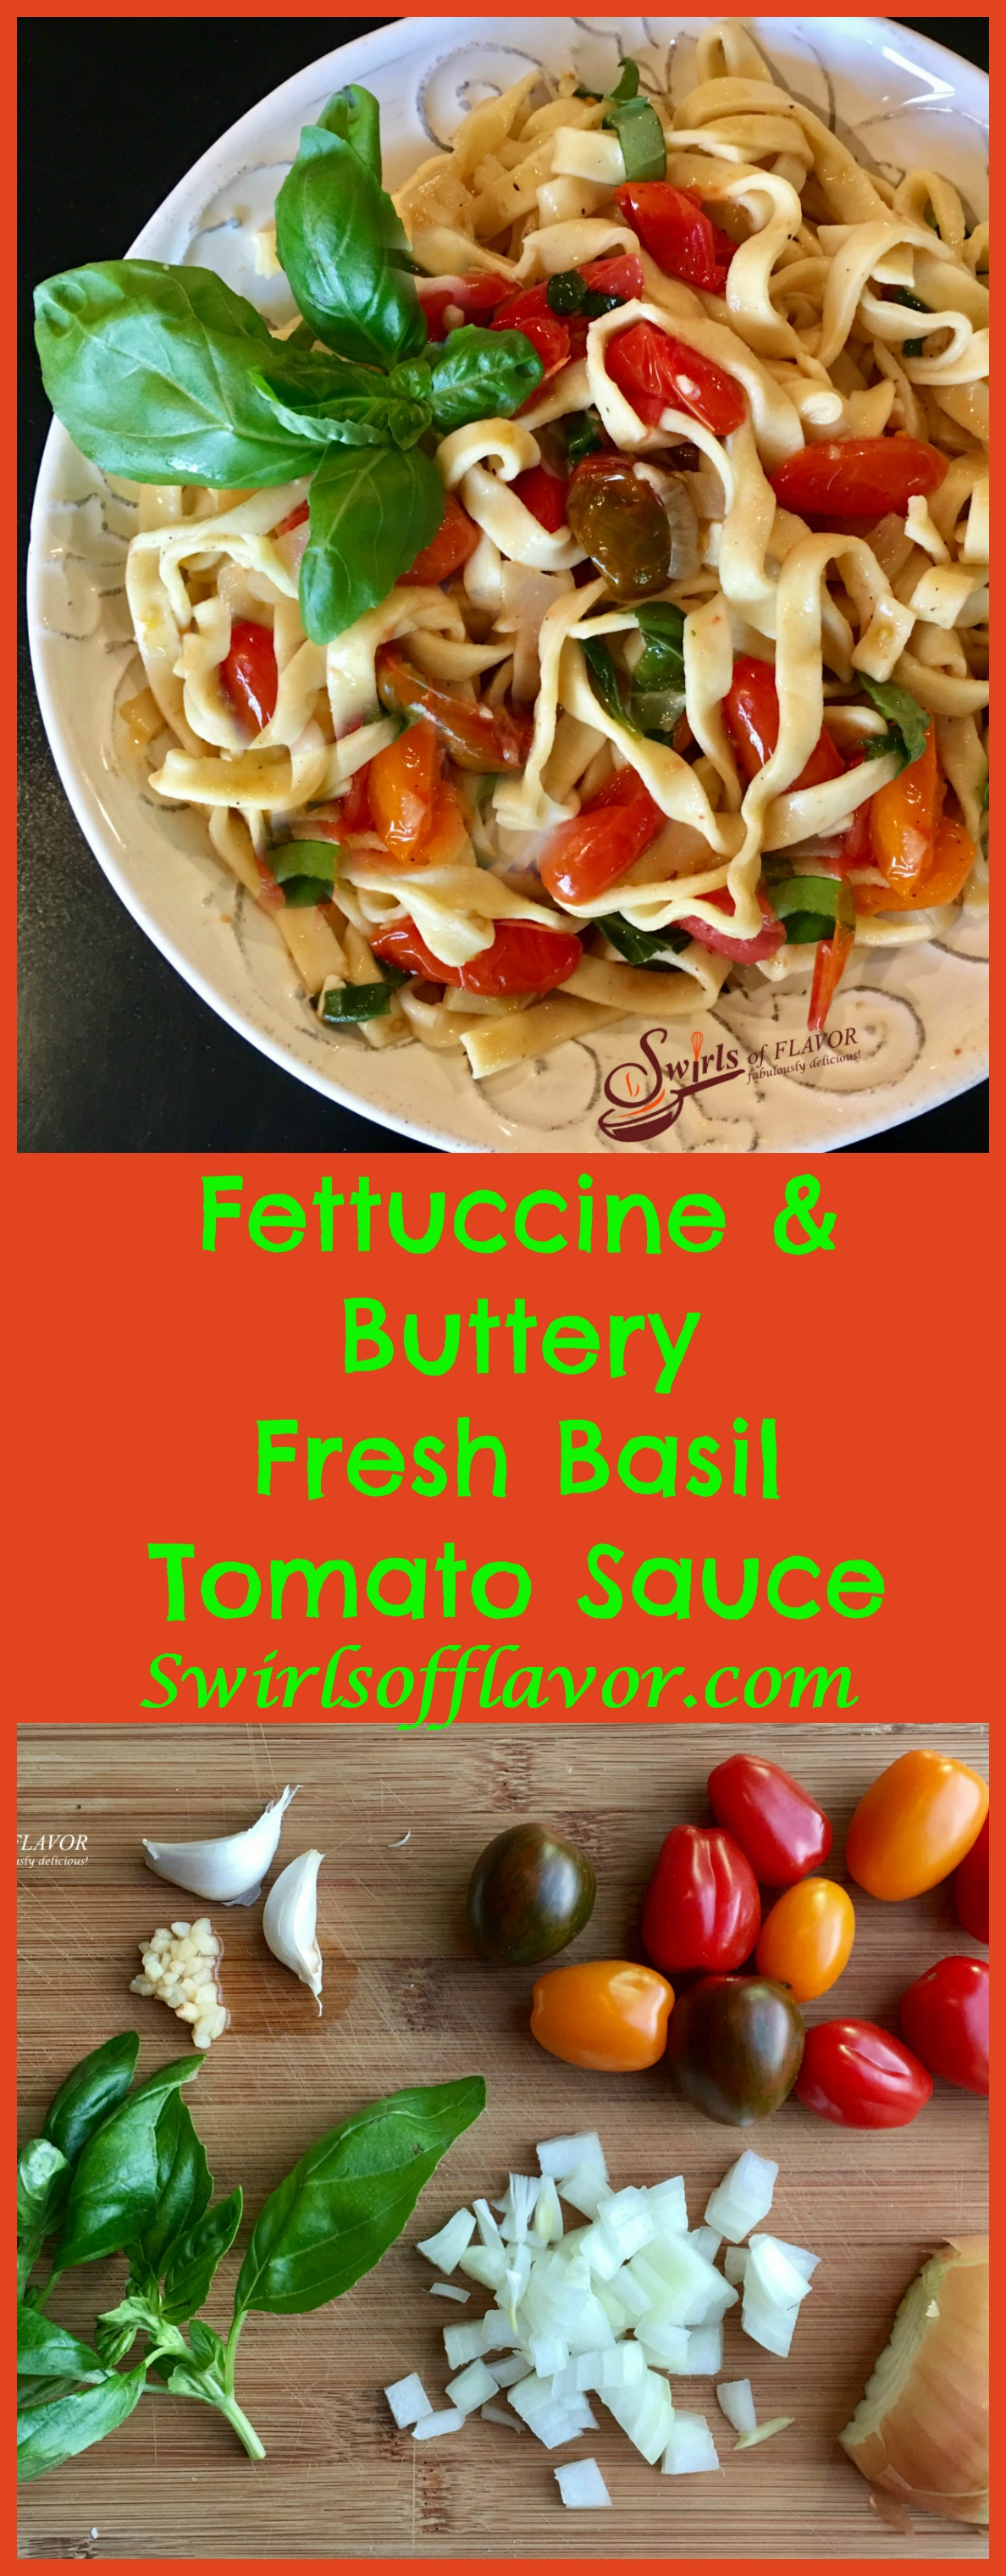 Fettuccine & Buttery Fresh Basil Tomato Sauce! Tender homemade pasta coated in a buttery white wine sauce seasoned with flecks of fresh basil and juicy perfectly wilted heirloom tomatoes! farmers market | heirloom tomatoes | fresh basil | white wine | butter sauce | homemade pasta | easy recipe | farmers market | #swirlsofflavor